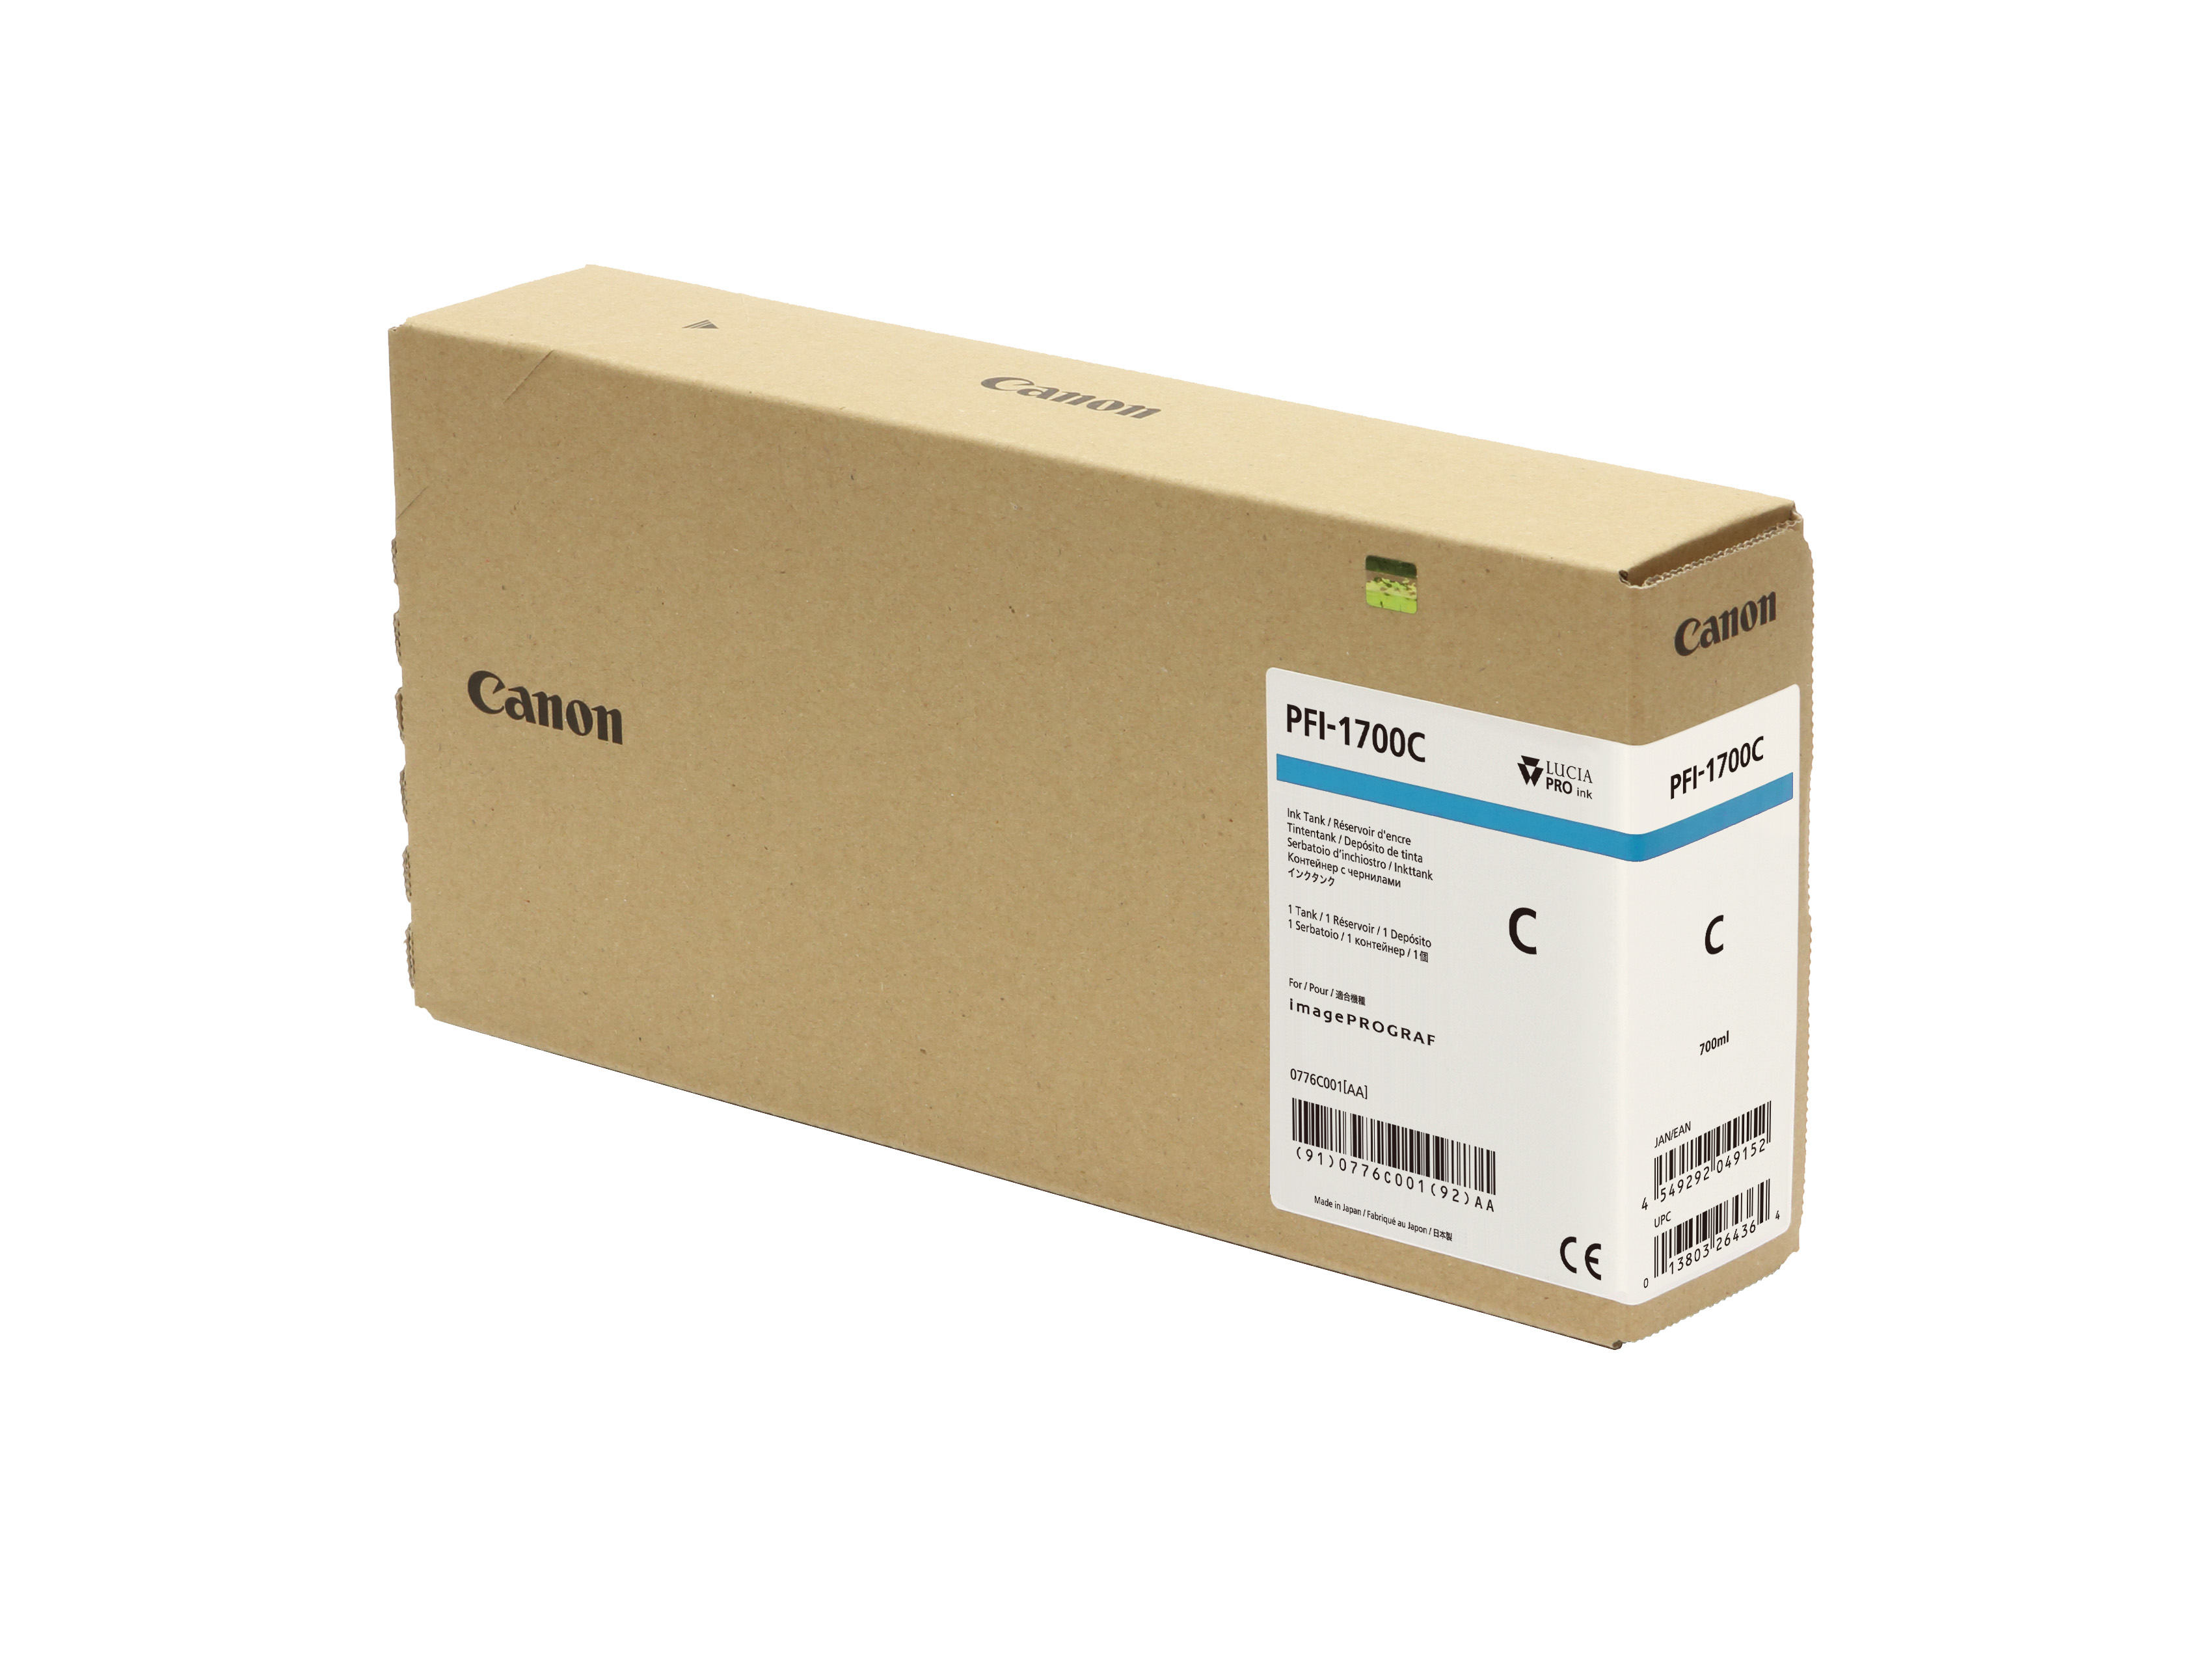 Canon PFI-1700C Cyan Ink Tank - 700ml Cartridge - for Canon PRO-2000, PRO-4000, PRO-4000S & PRO-6000S Printer - 0776C001AA - next day delivery from GDS Graphic Design Supplies Ltd